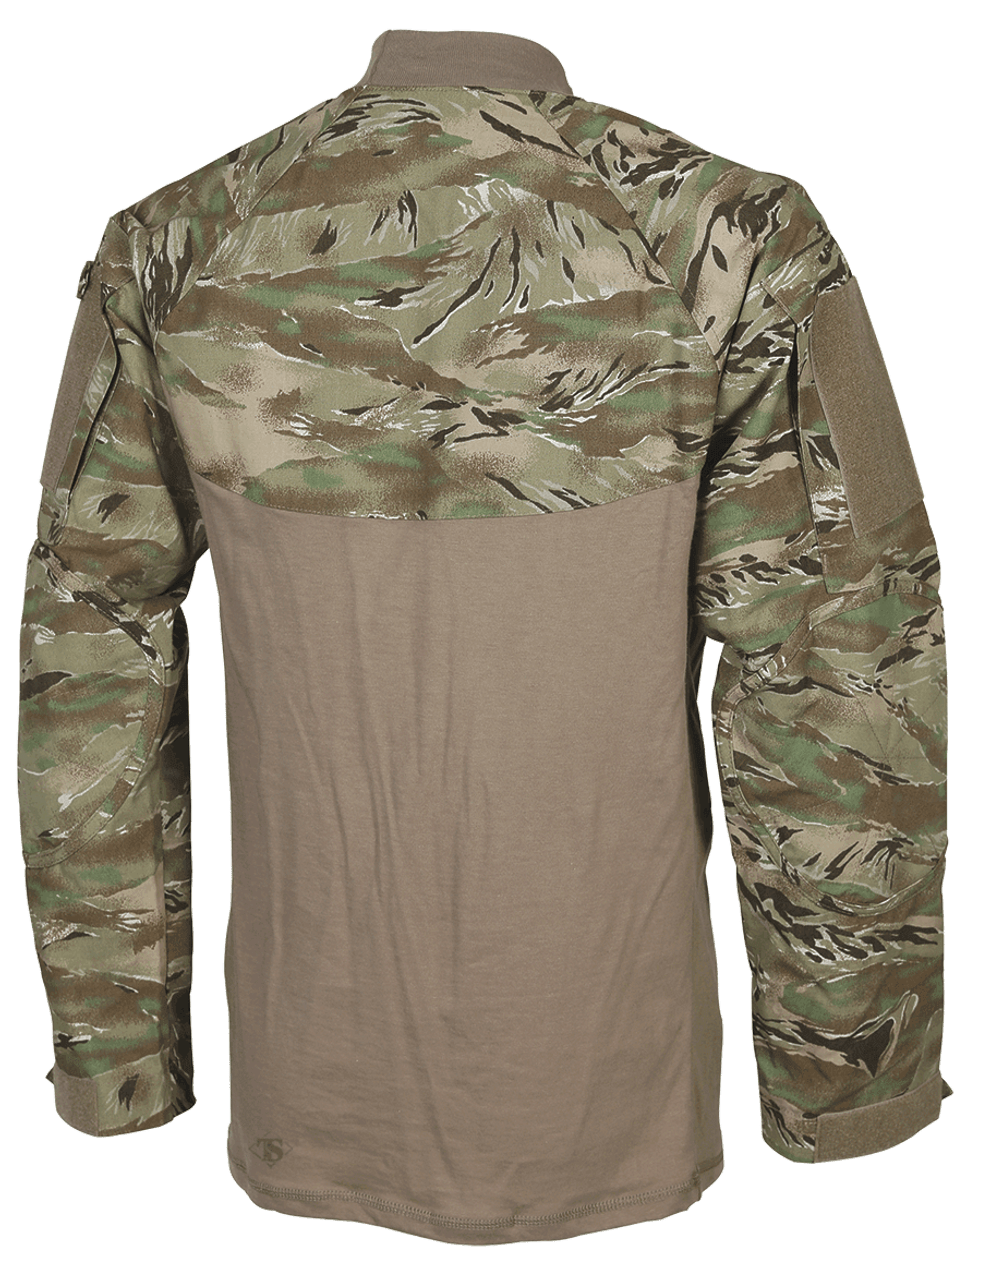 All Terrain Tiger NYCO Tru-Spec Tactical Response Shirt Short Extra Large